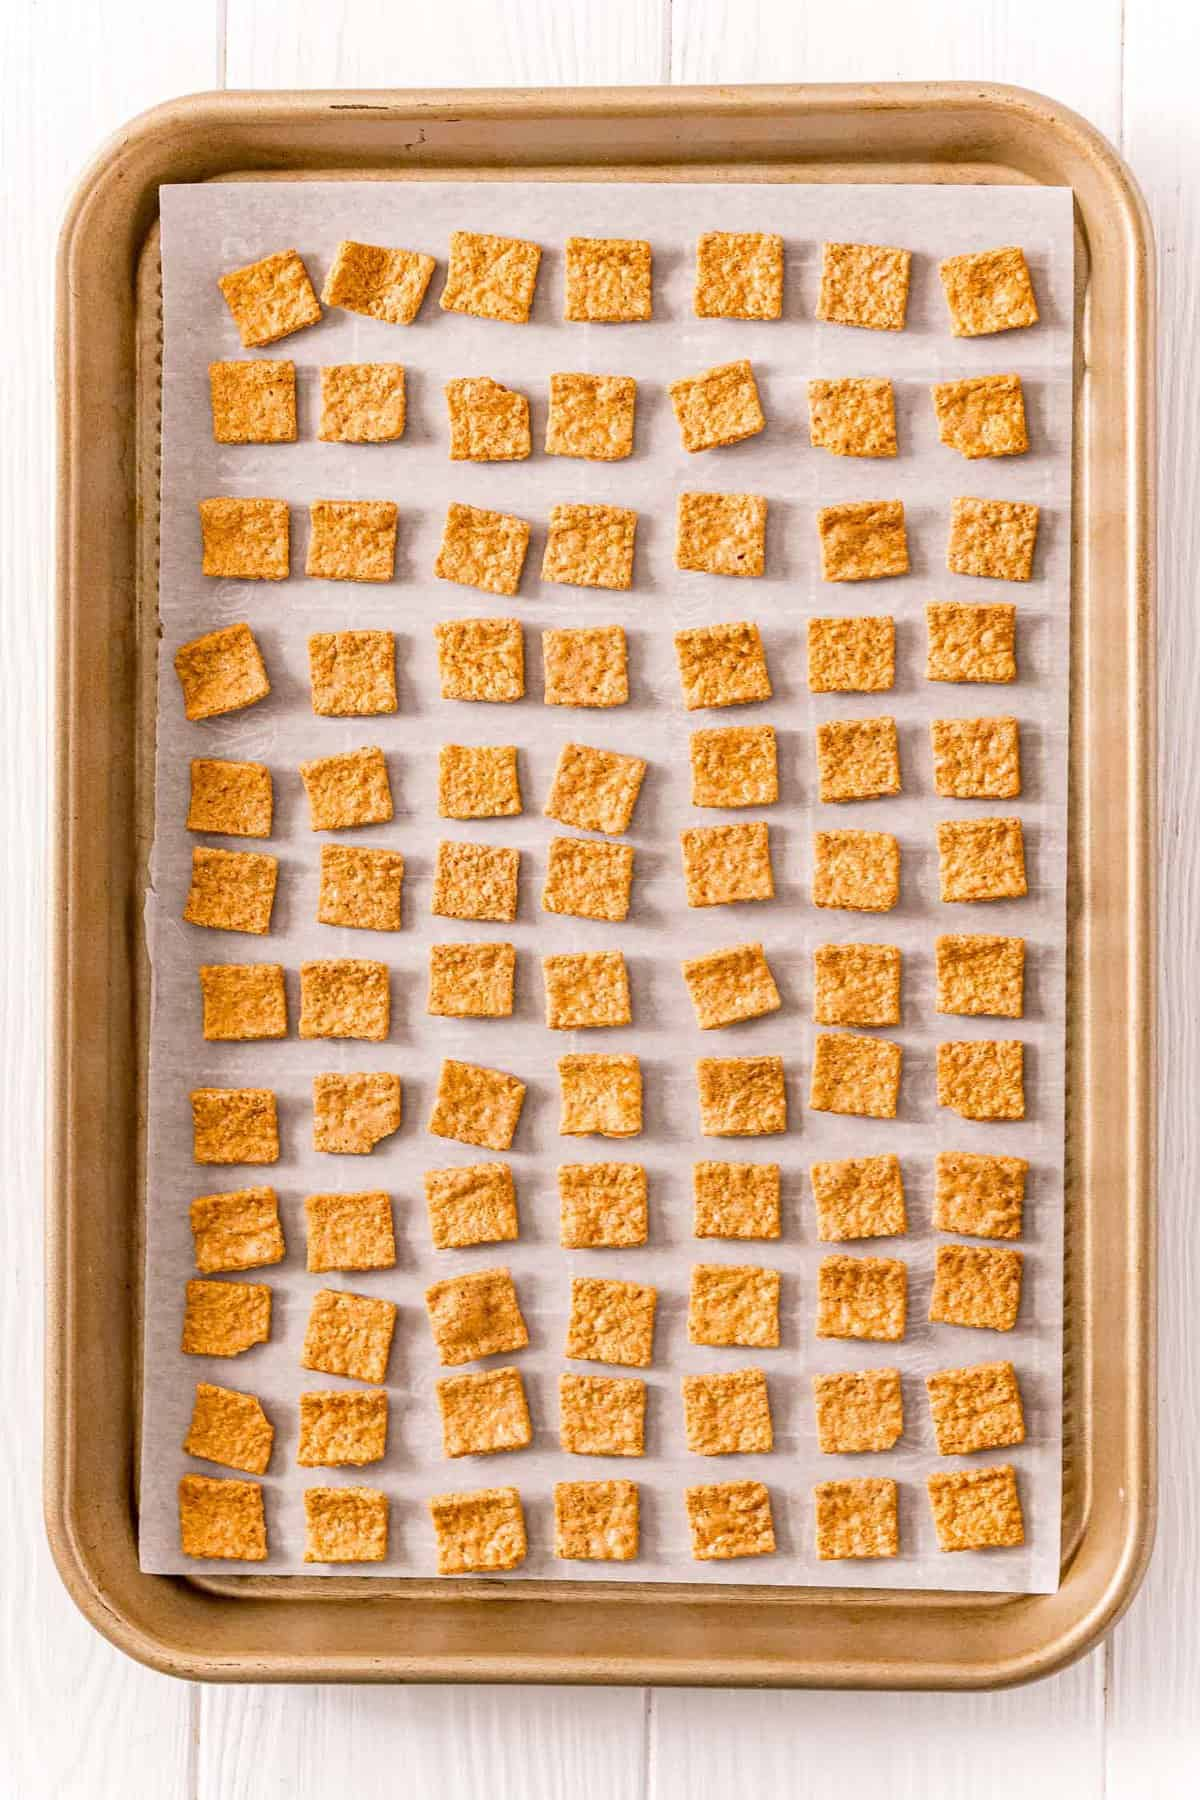 Golden Graham cereal laid out on a baking sheet.